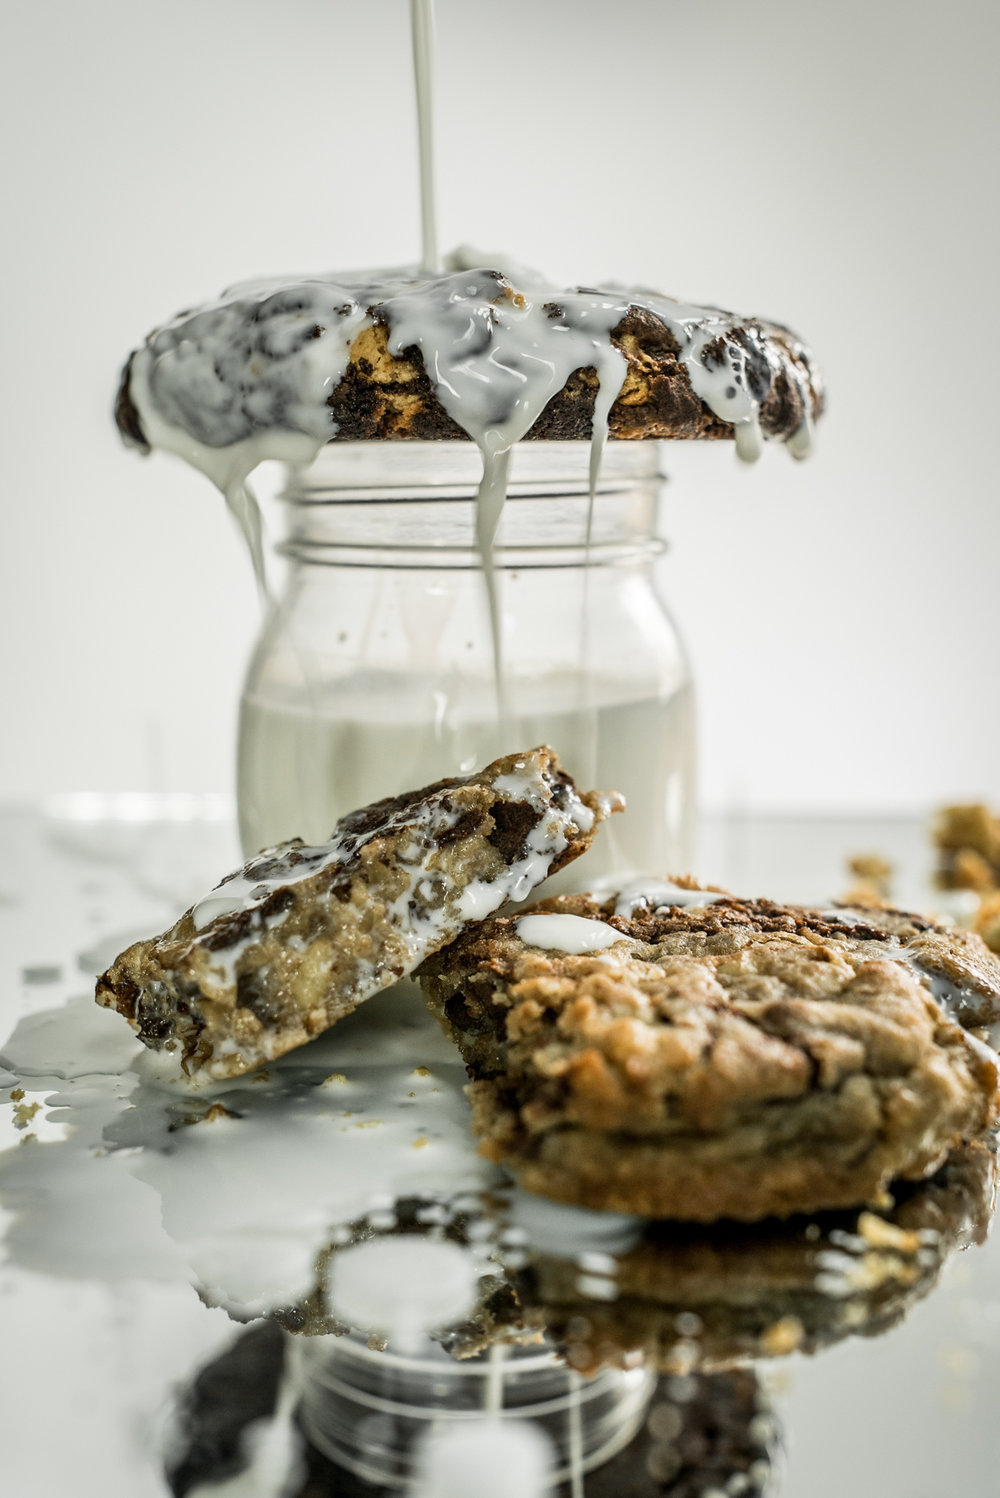 Taylor Vieger Food Photography Cookies 2019.jpg